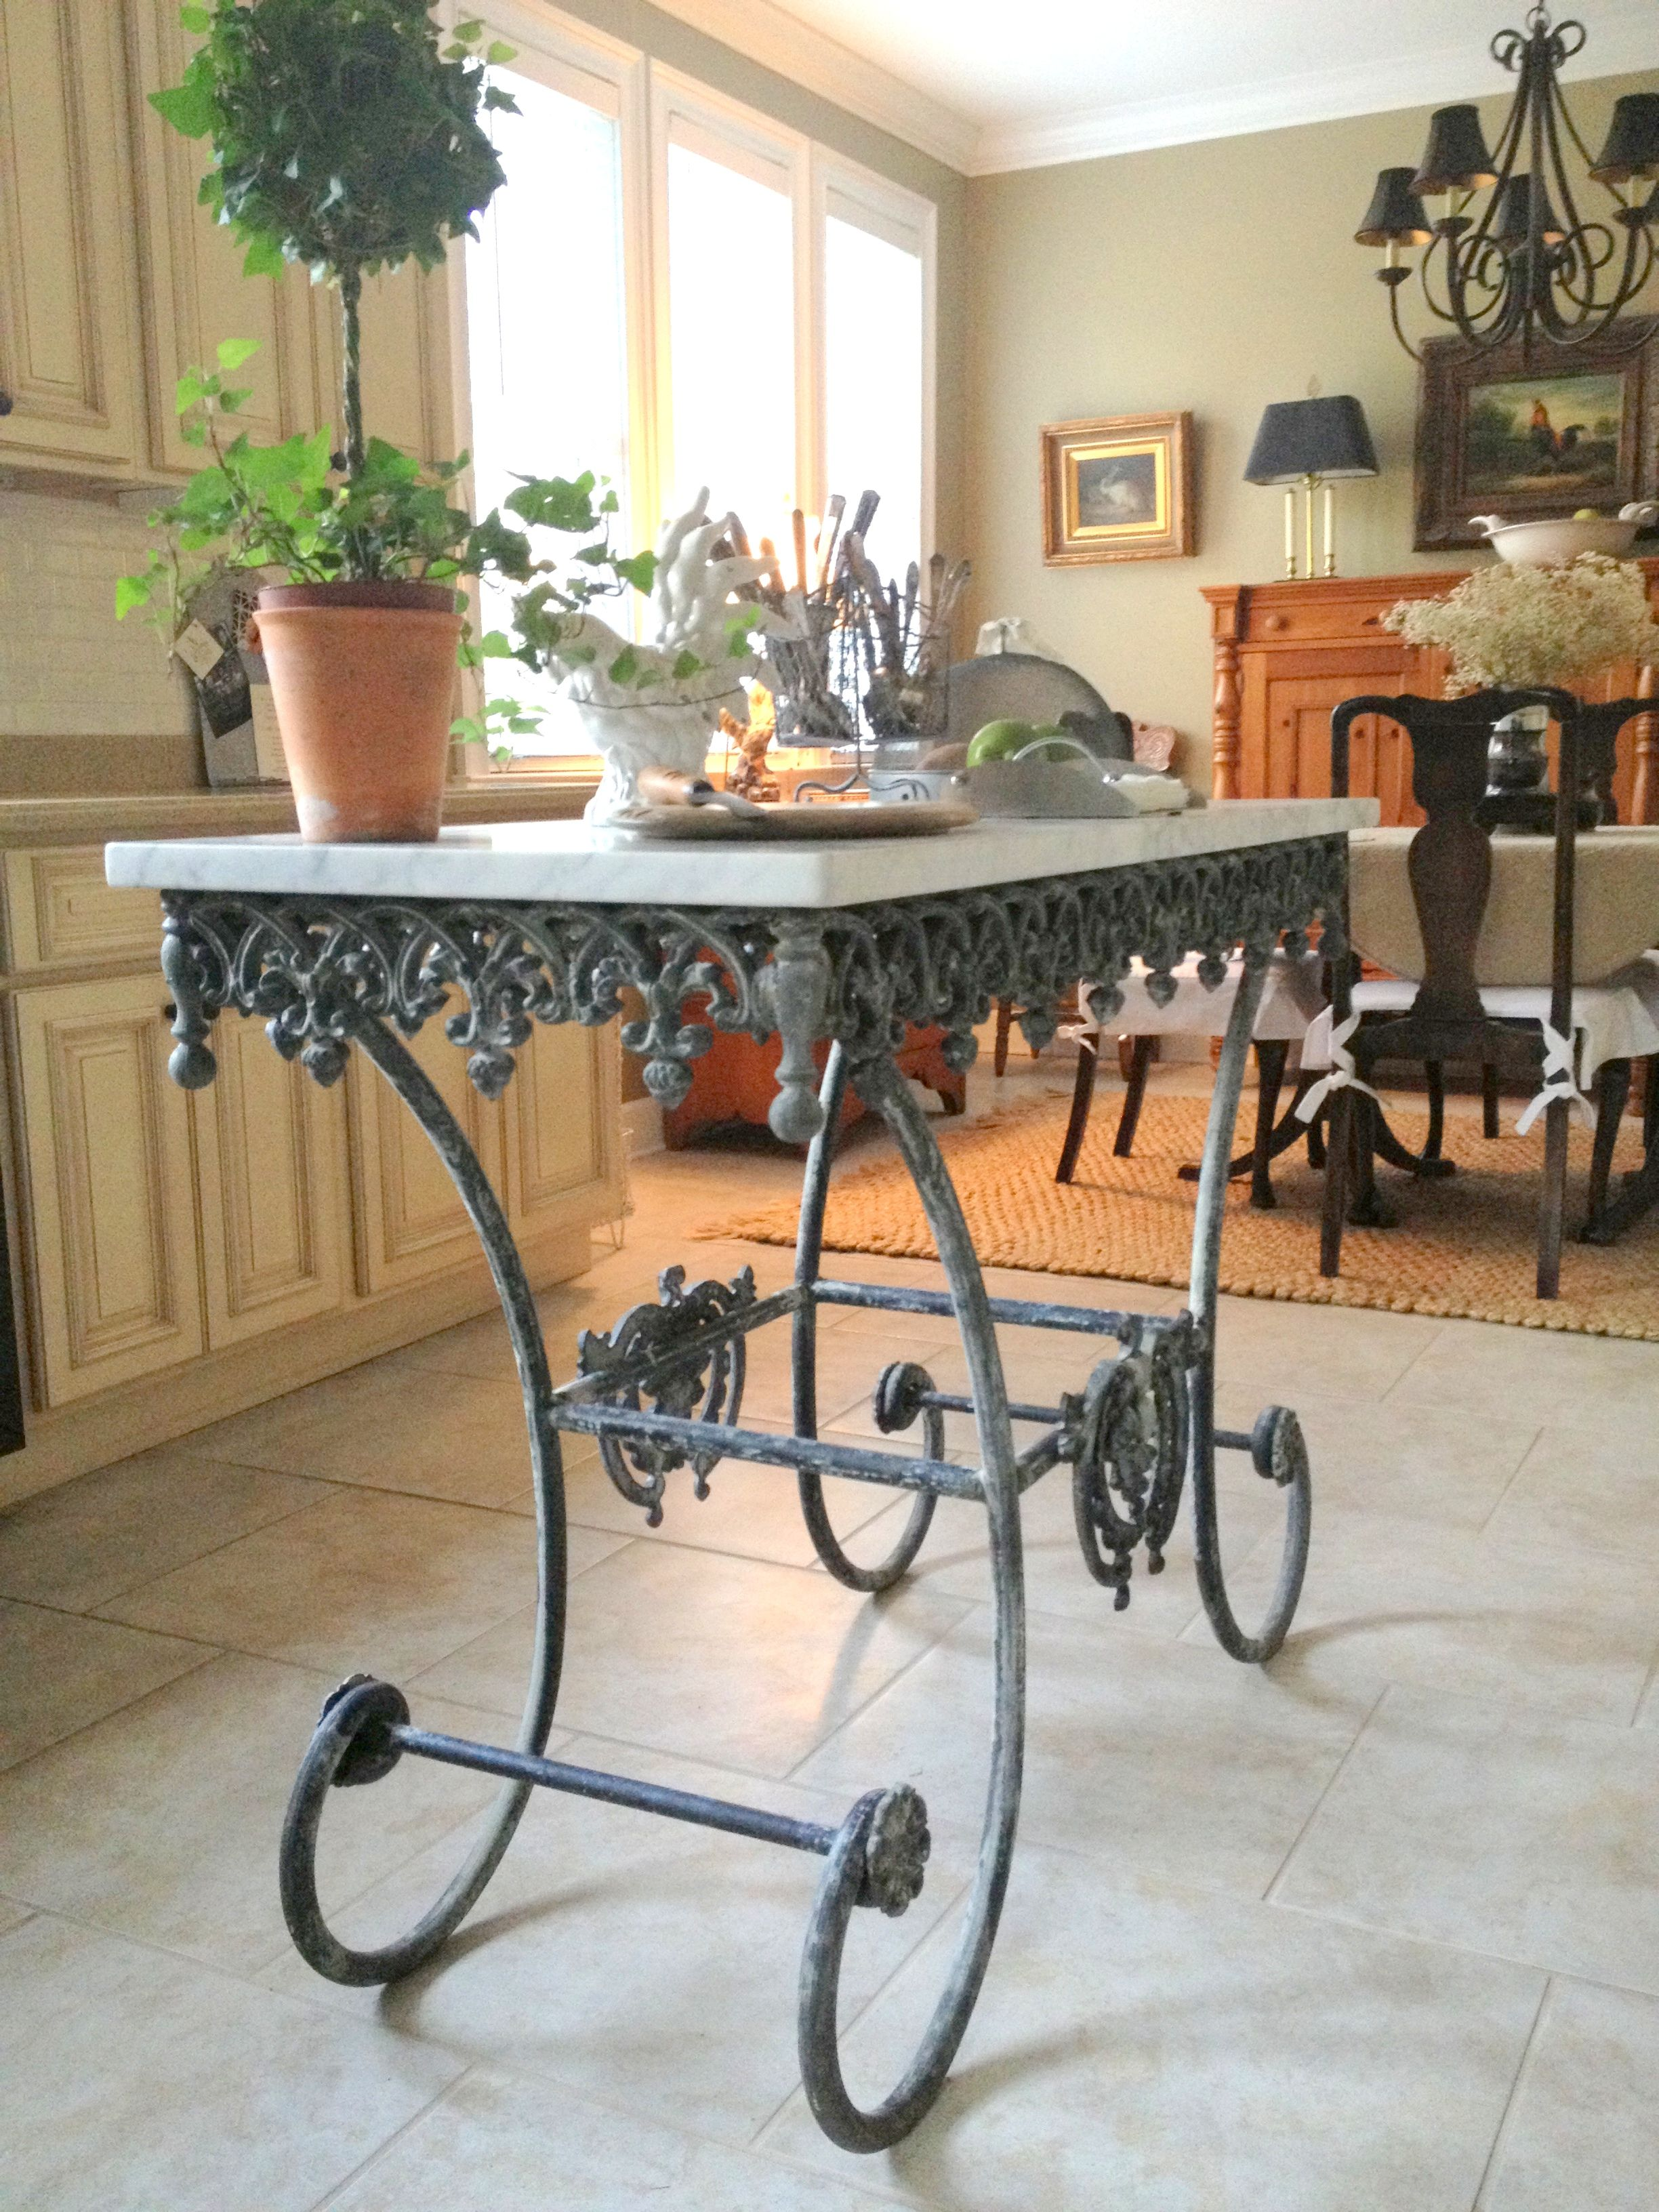 French pastry table island | repurpose, recycle, reuse ...